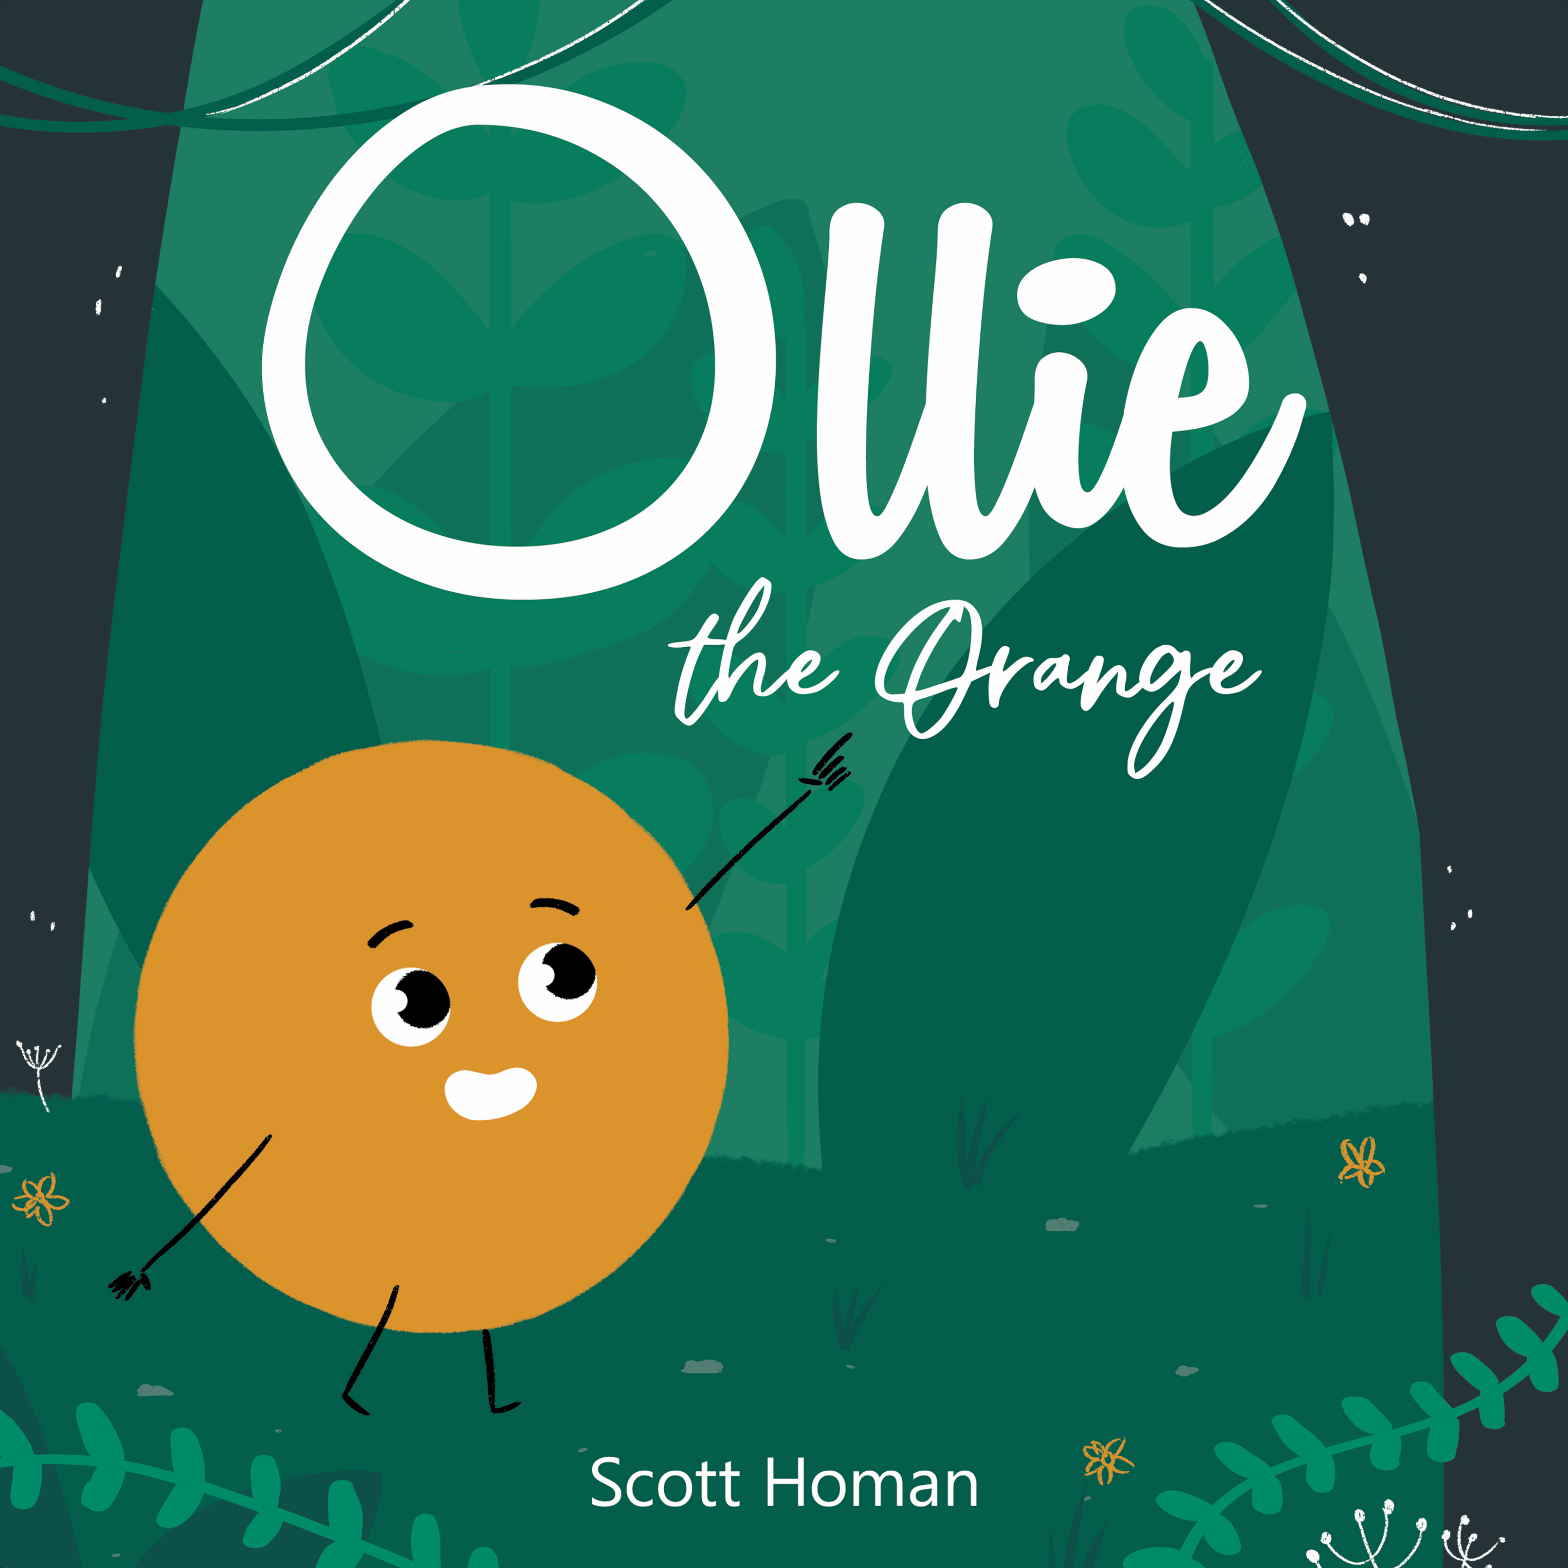 Cover of Ollie the Orange by Scott Homan